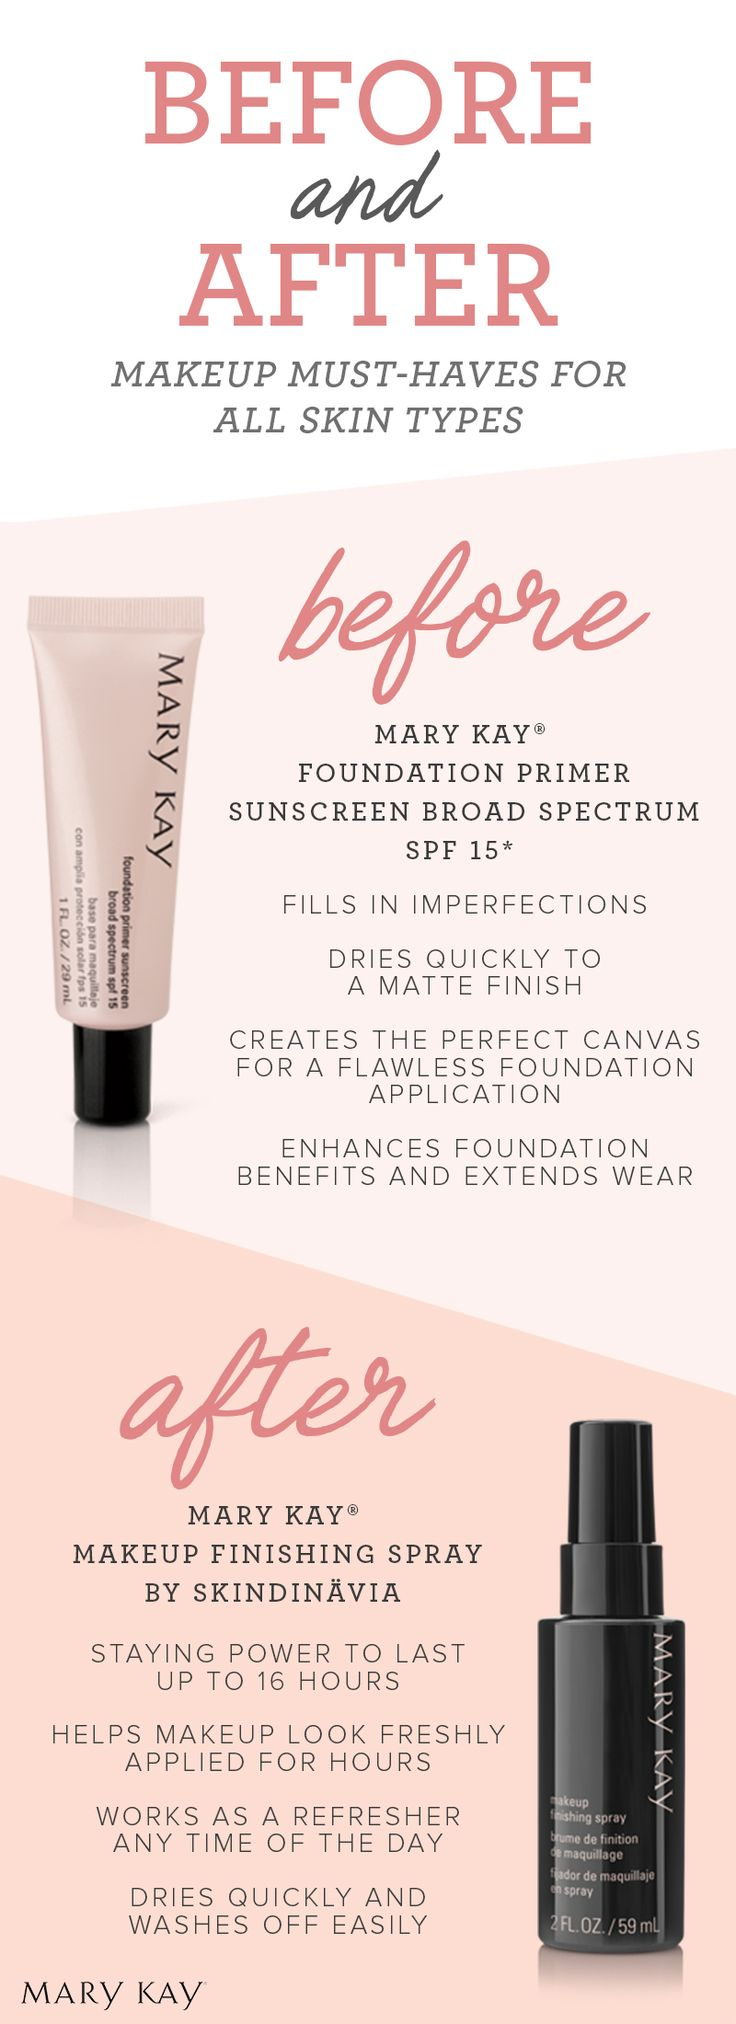 Ready, prep, set! Tip: Apply Mary Kay® Foundation Primer Sunscreen Broad Spectrum SPF 15* after your final skin care step to entire face and blend gently using your fingertips to create the perfect canvas for foundation application.